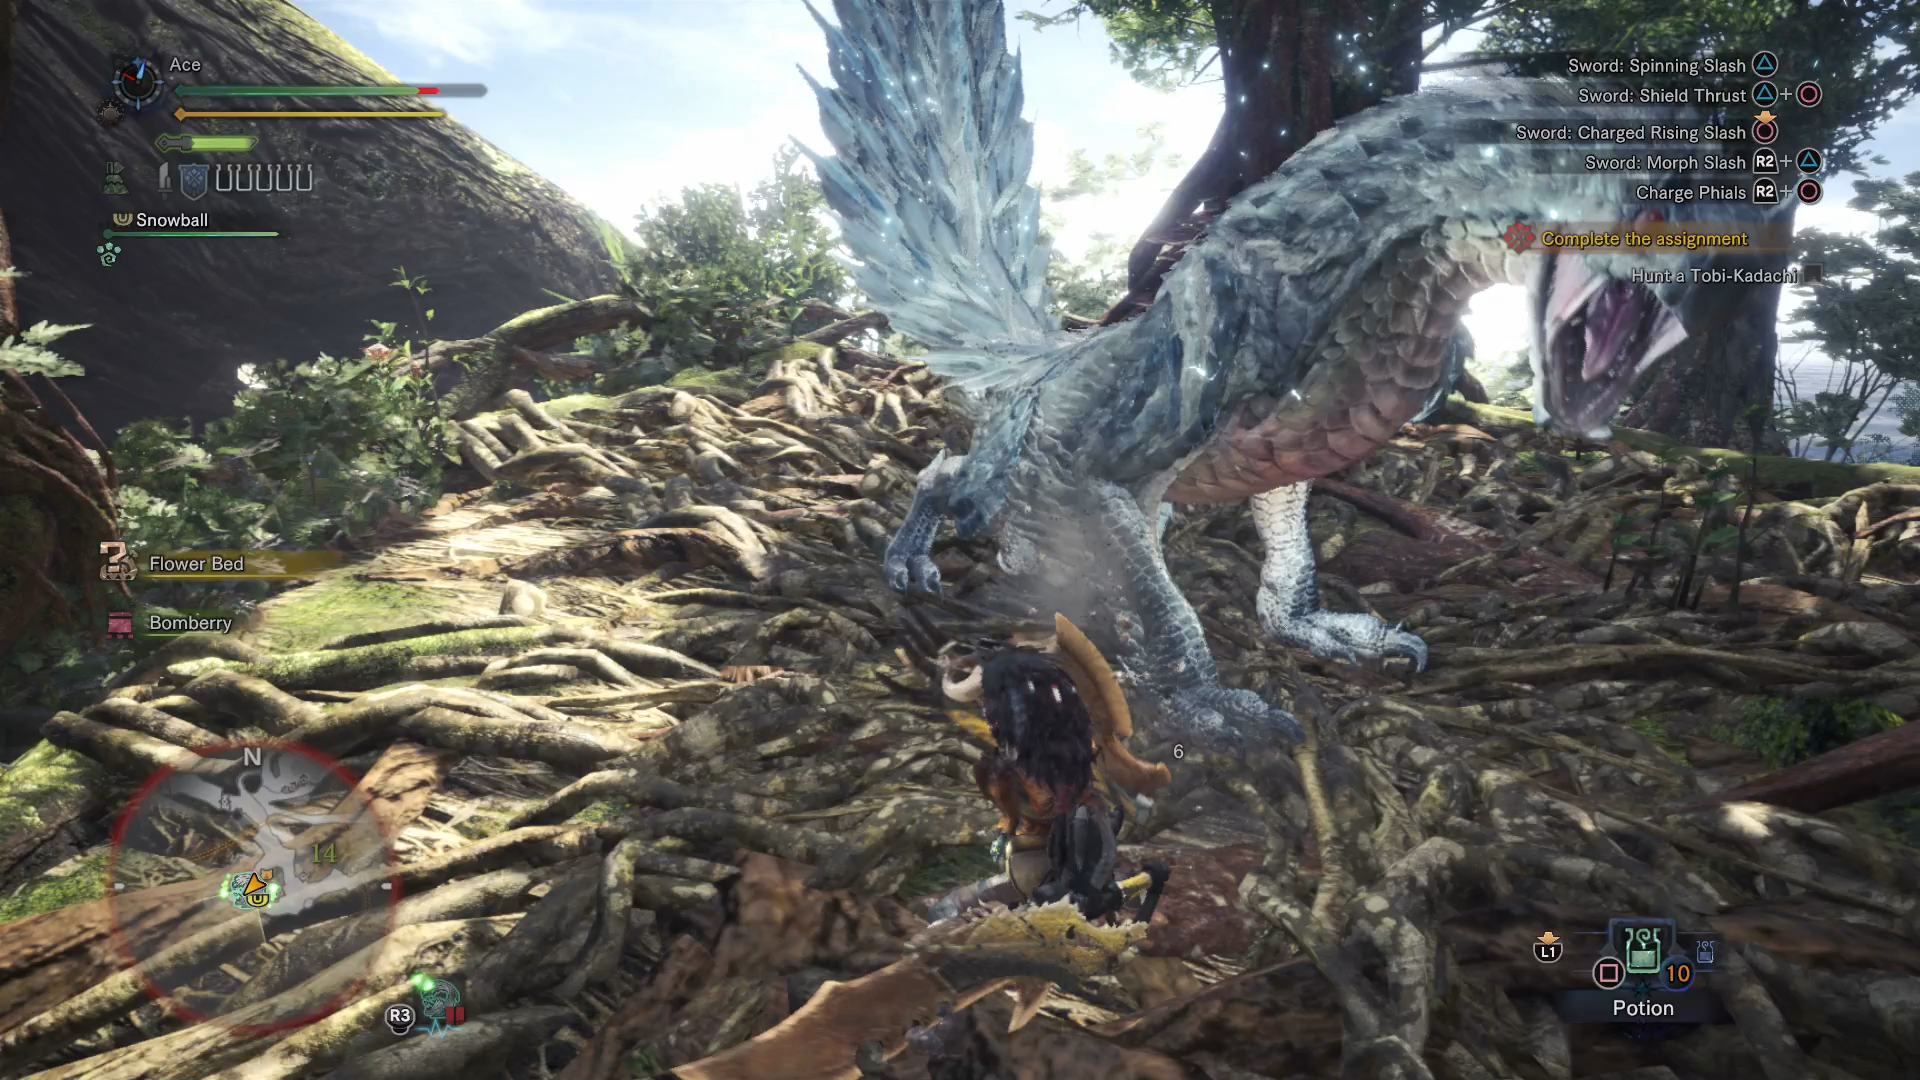 monster hunter world combat guide mhw controls guide how to